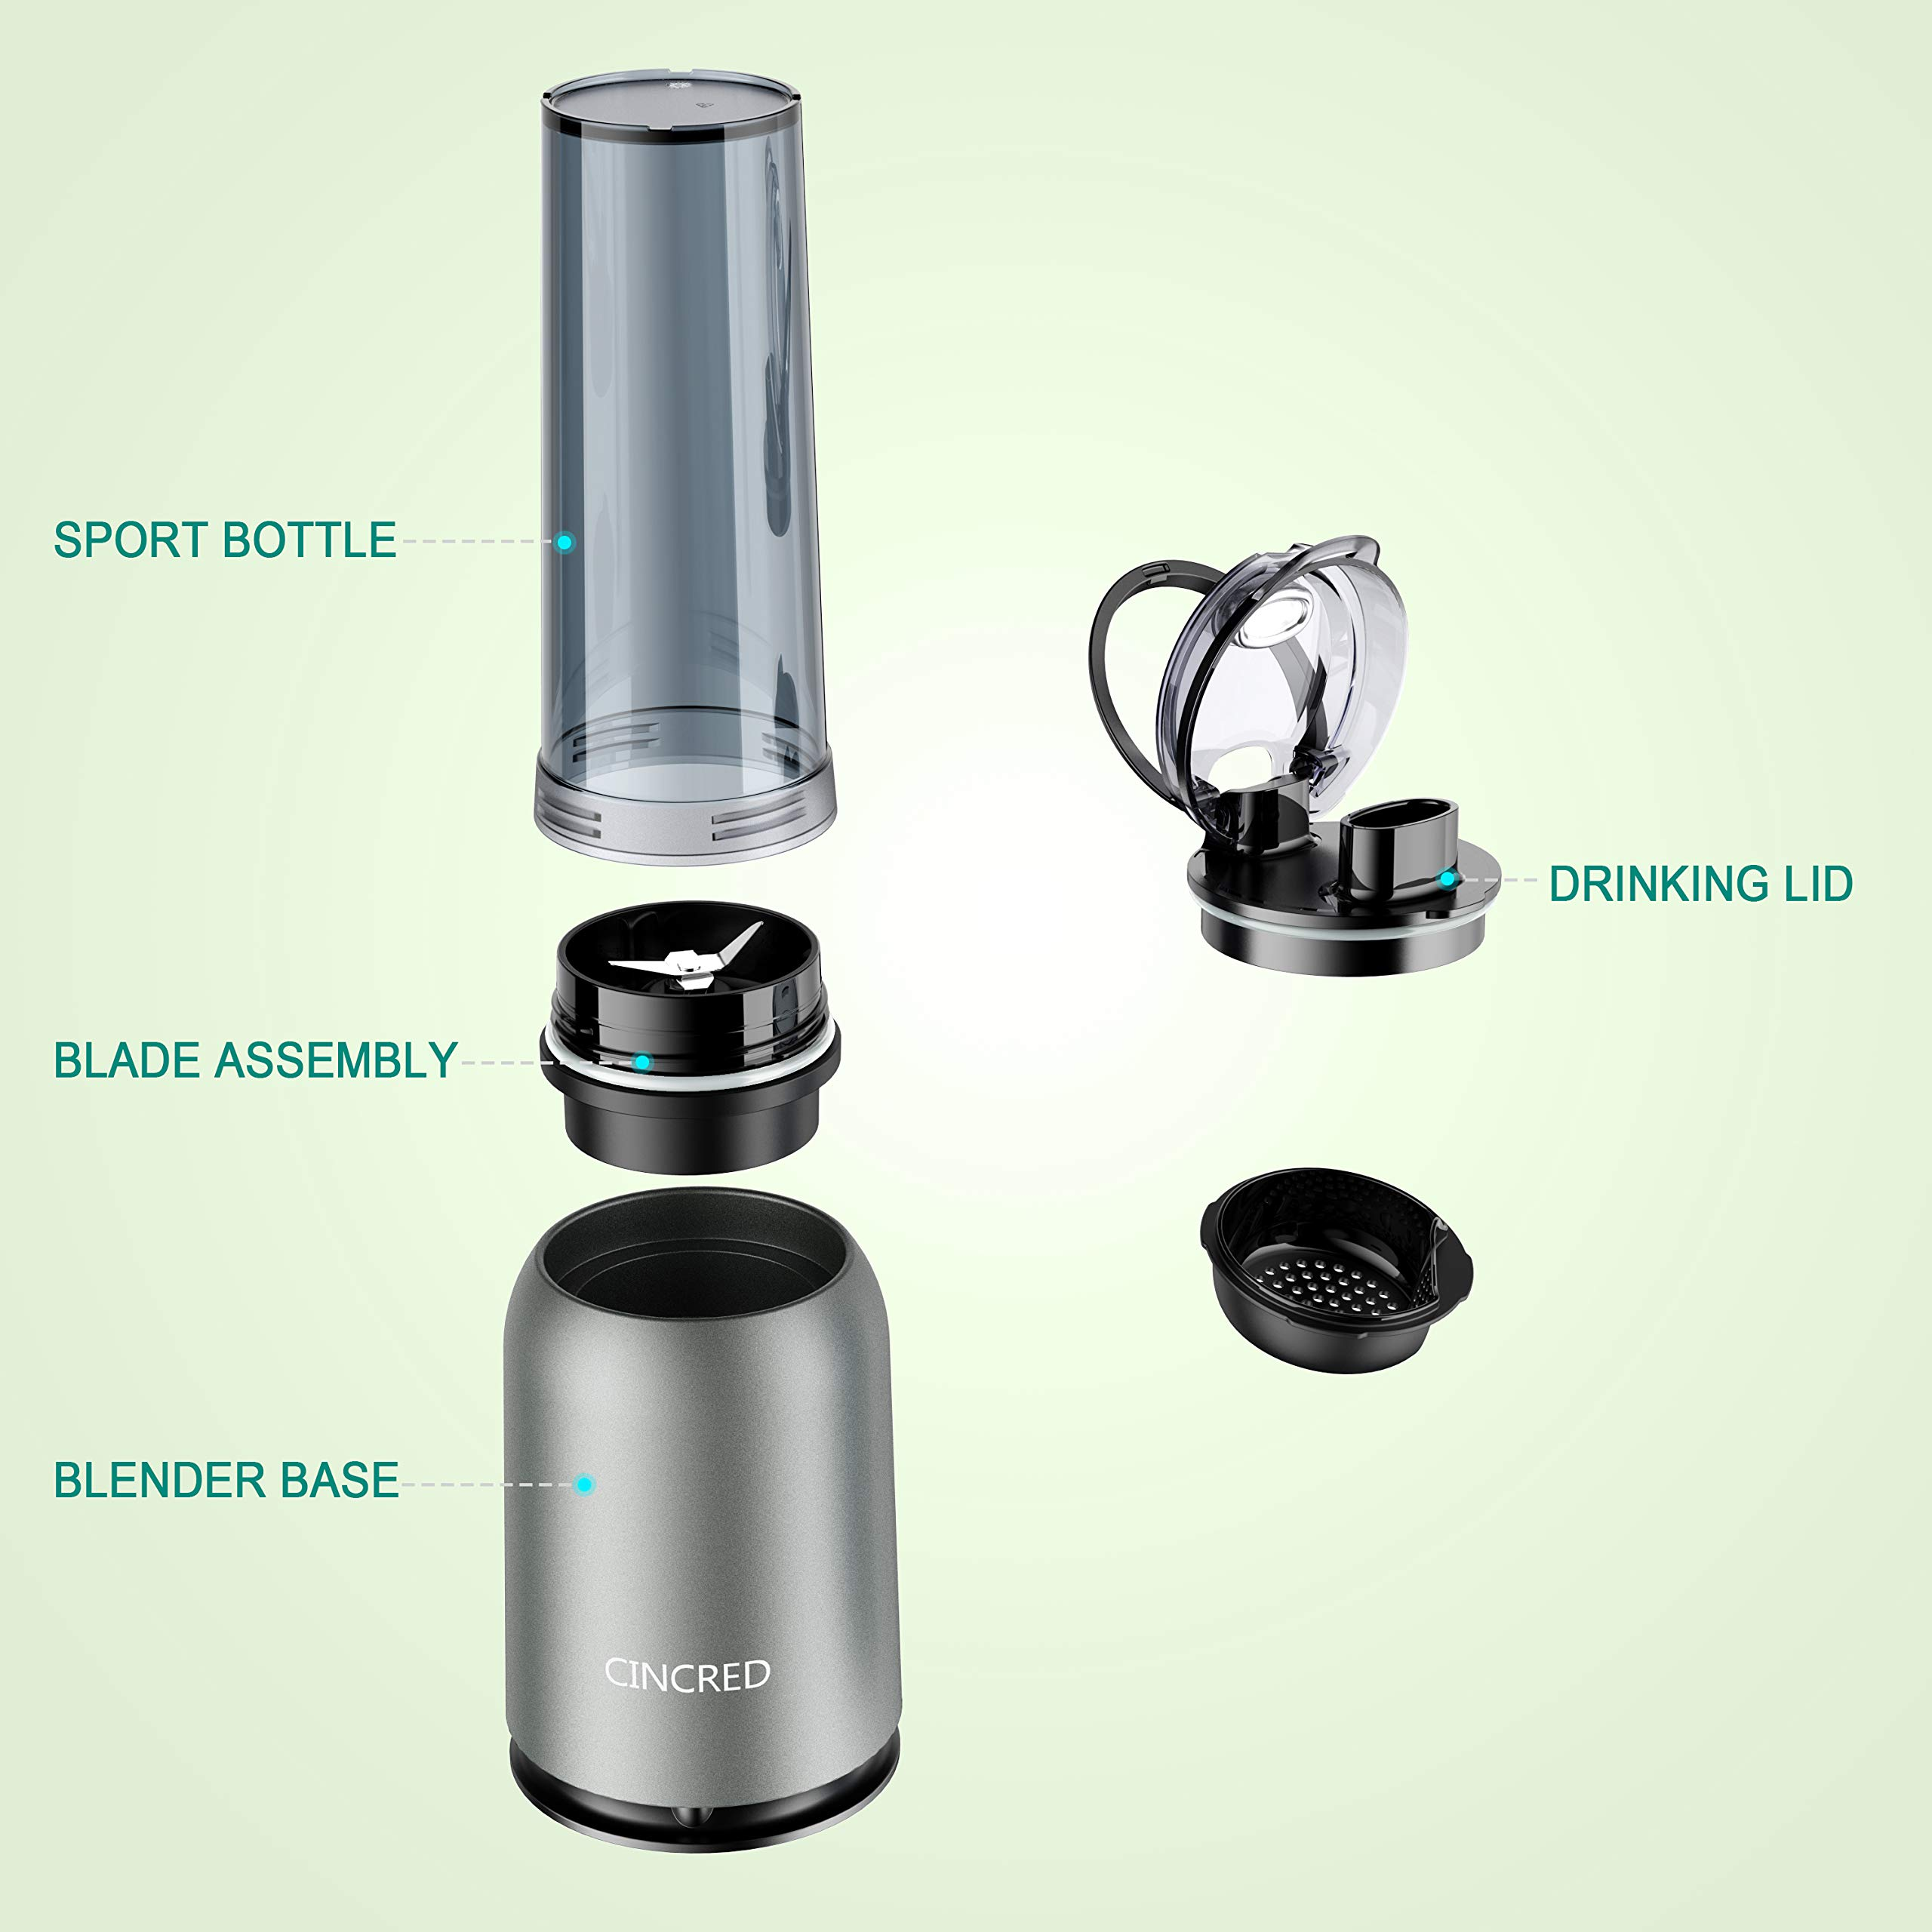 Updated 2019 Version Professional Personal Countertop Blender for Milkshake, Frozen Fruit Vegetables Drinks, Smoothie, Ice, Small Mini Portable Single Food Bullet Blenders Processor Shake Mixer Maker with Cup for Home Kitchen by Cincred (Image #5)